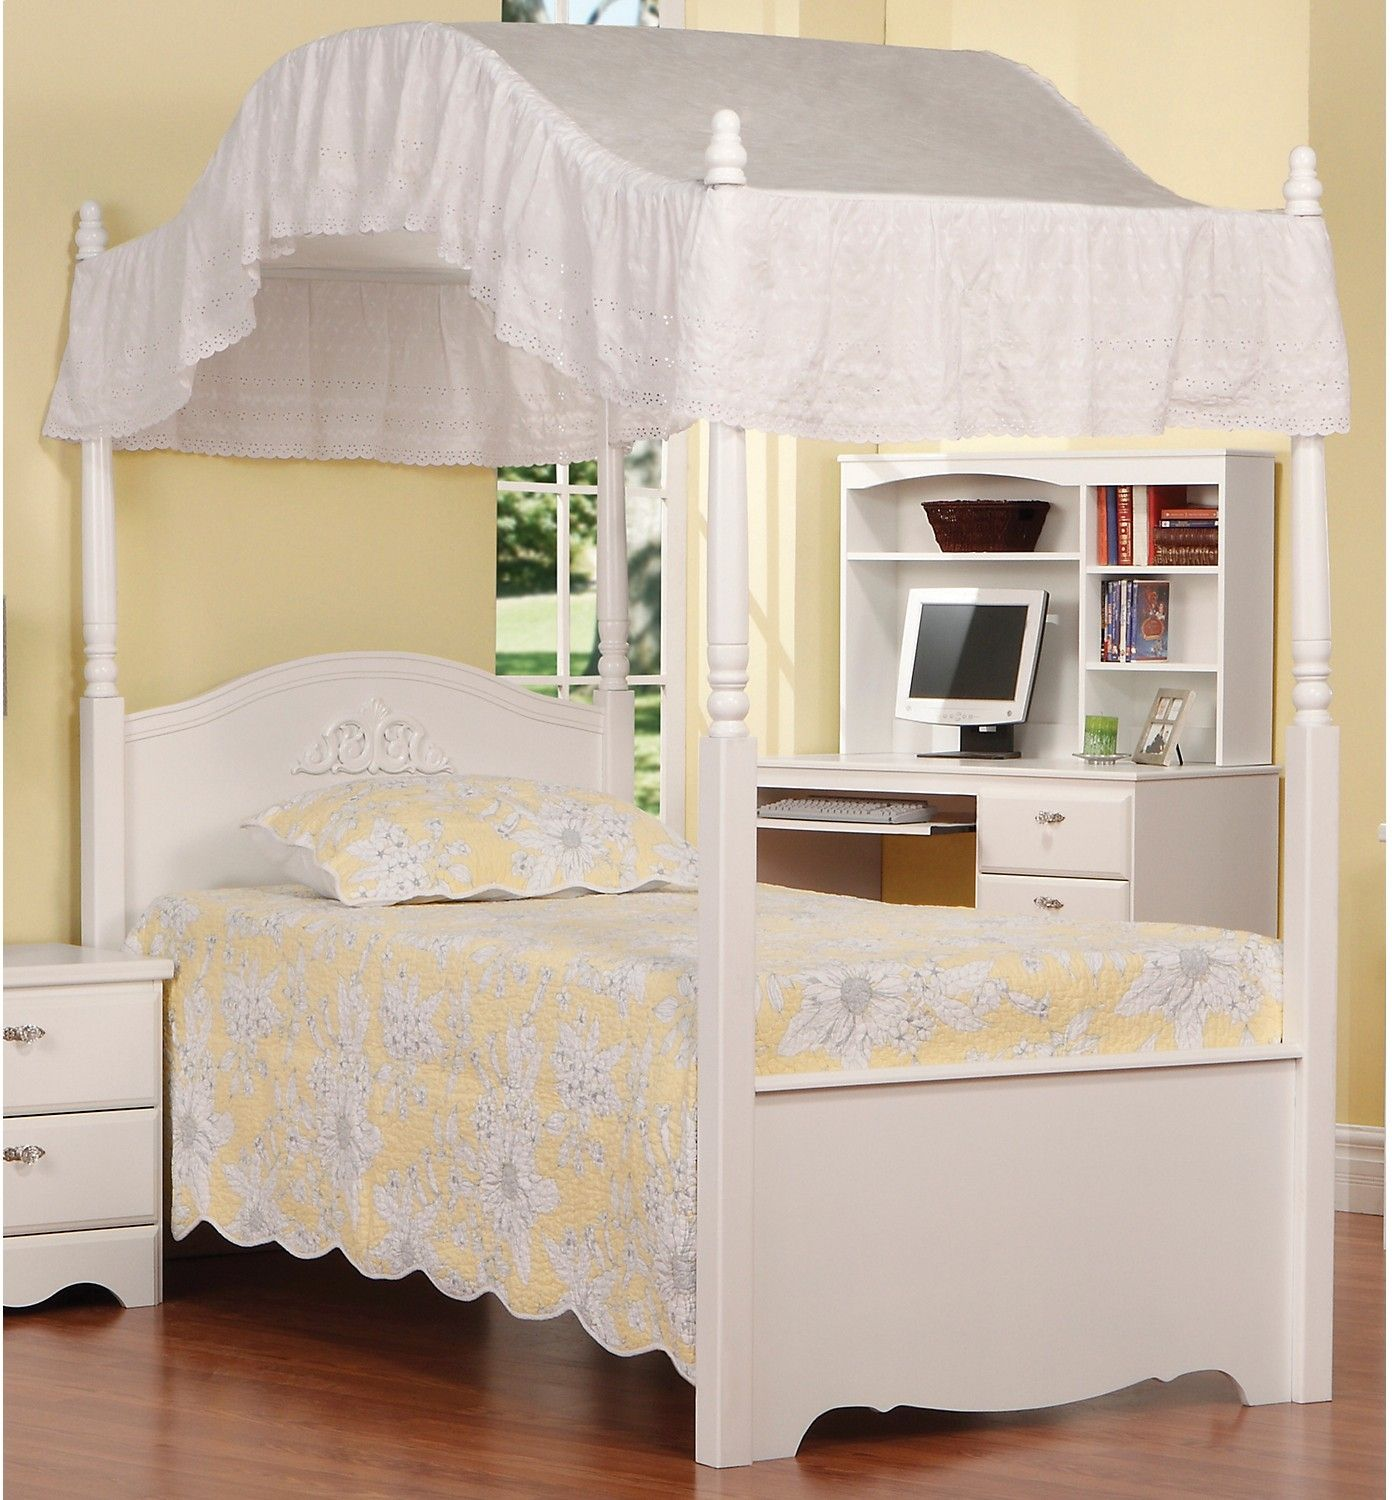 Diamond Dreams Twin Canopy Bed Girls Bed Canopy Twin Canopy Bed